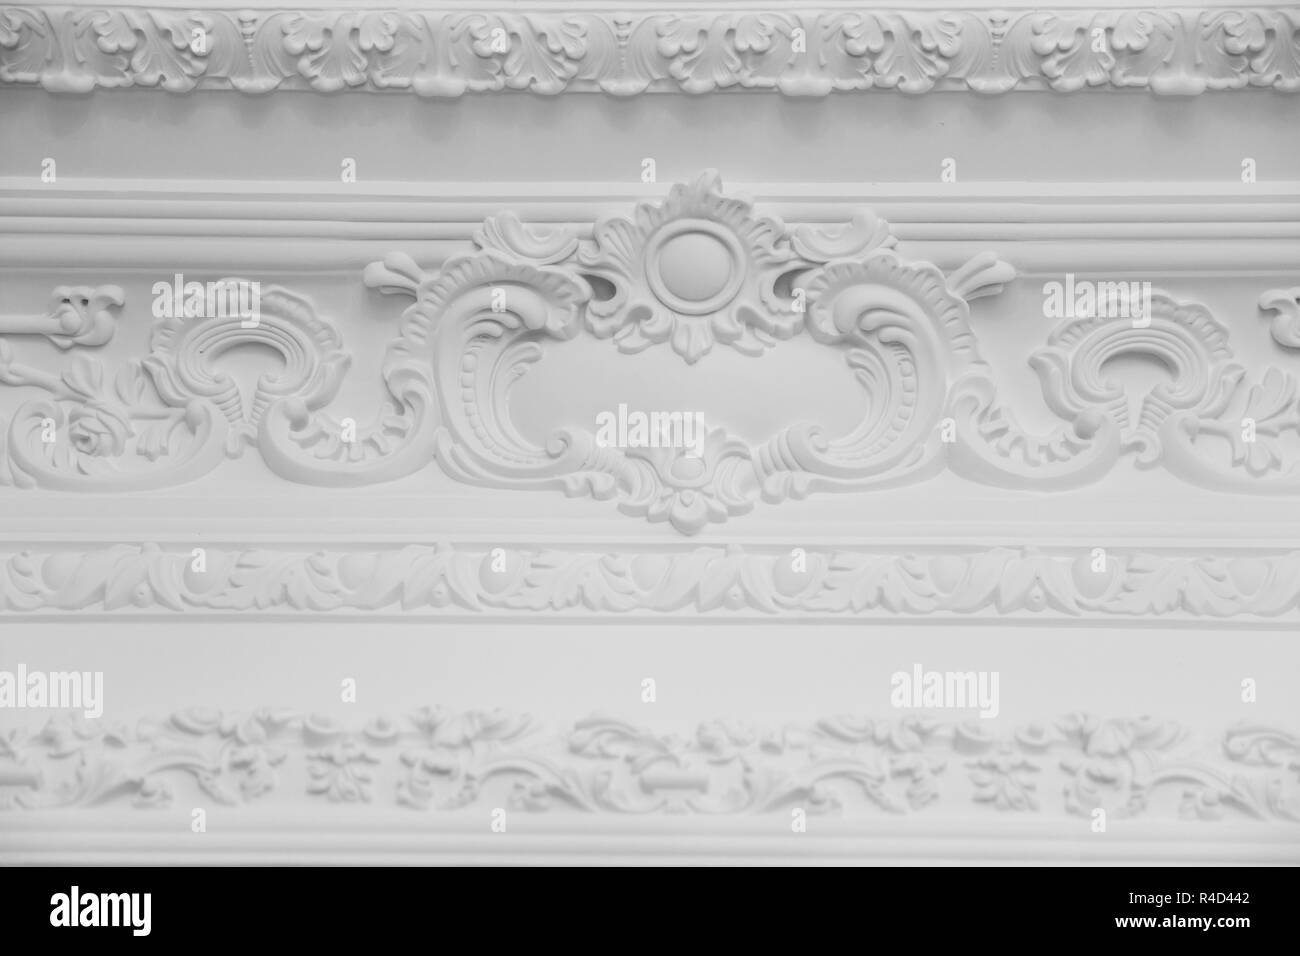 Luxury White Wall Design Bas Relief With Stucco Mouldings Roccoco Element Stock Photo Alamy